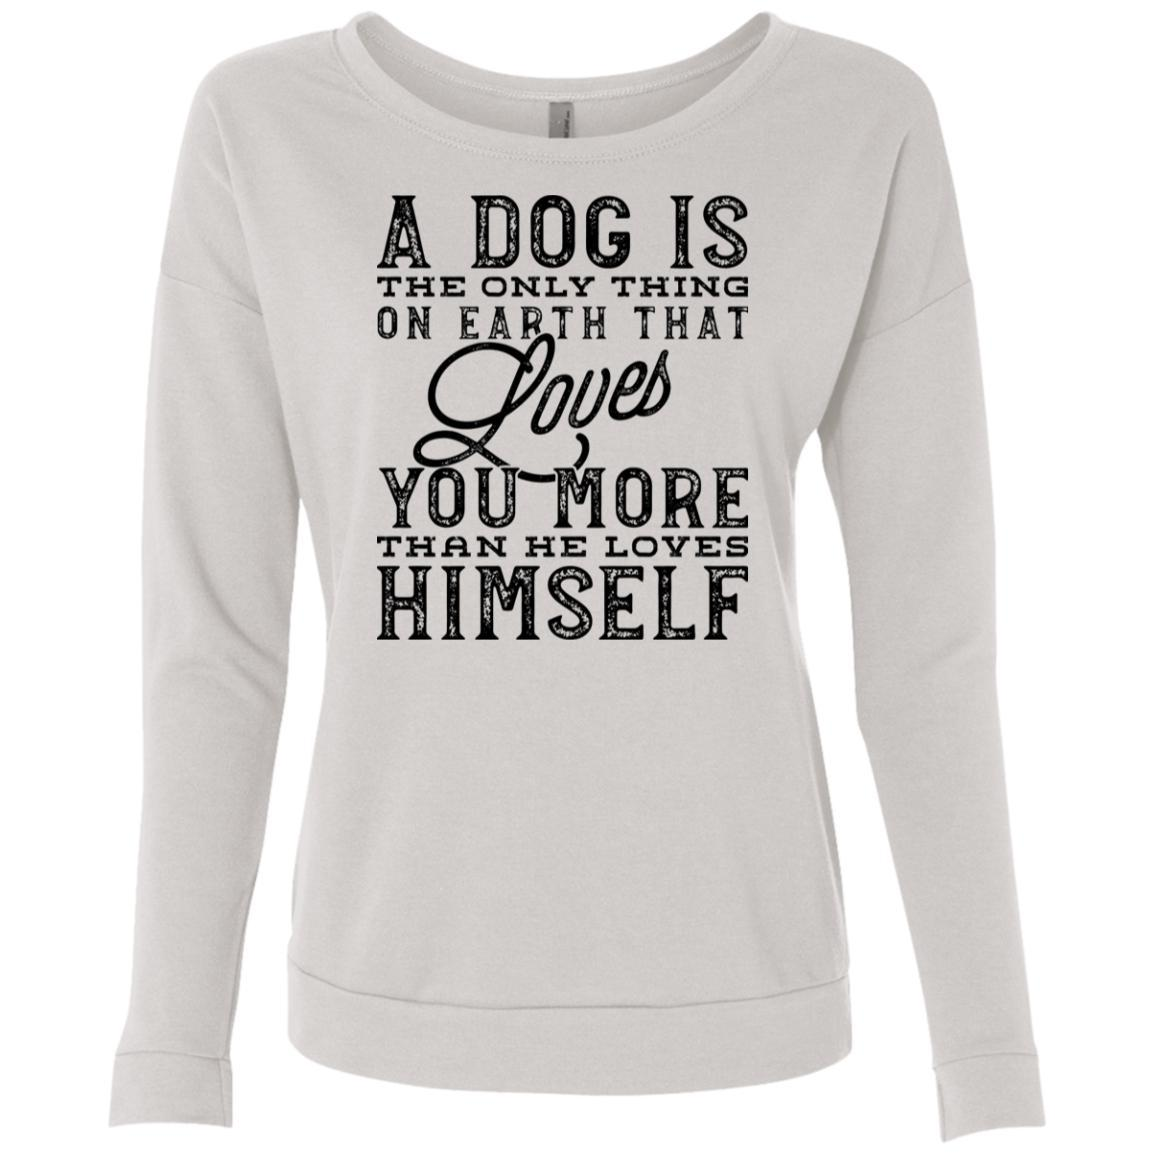 A Dog Is The Only Thing On Earth That Loves You Sweatshirt For Women - Ohmyglad